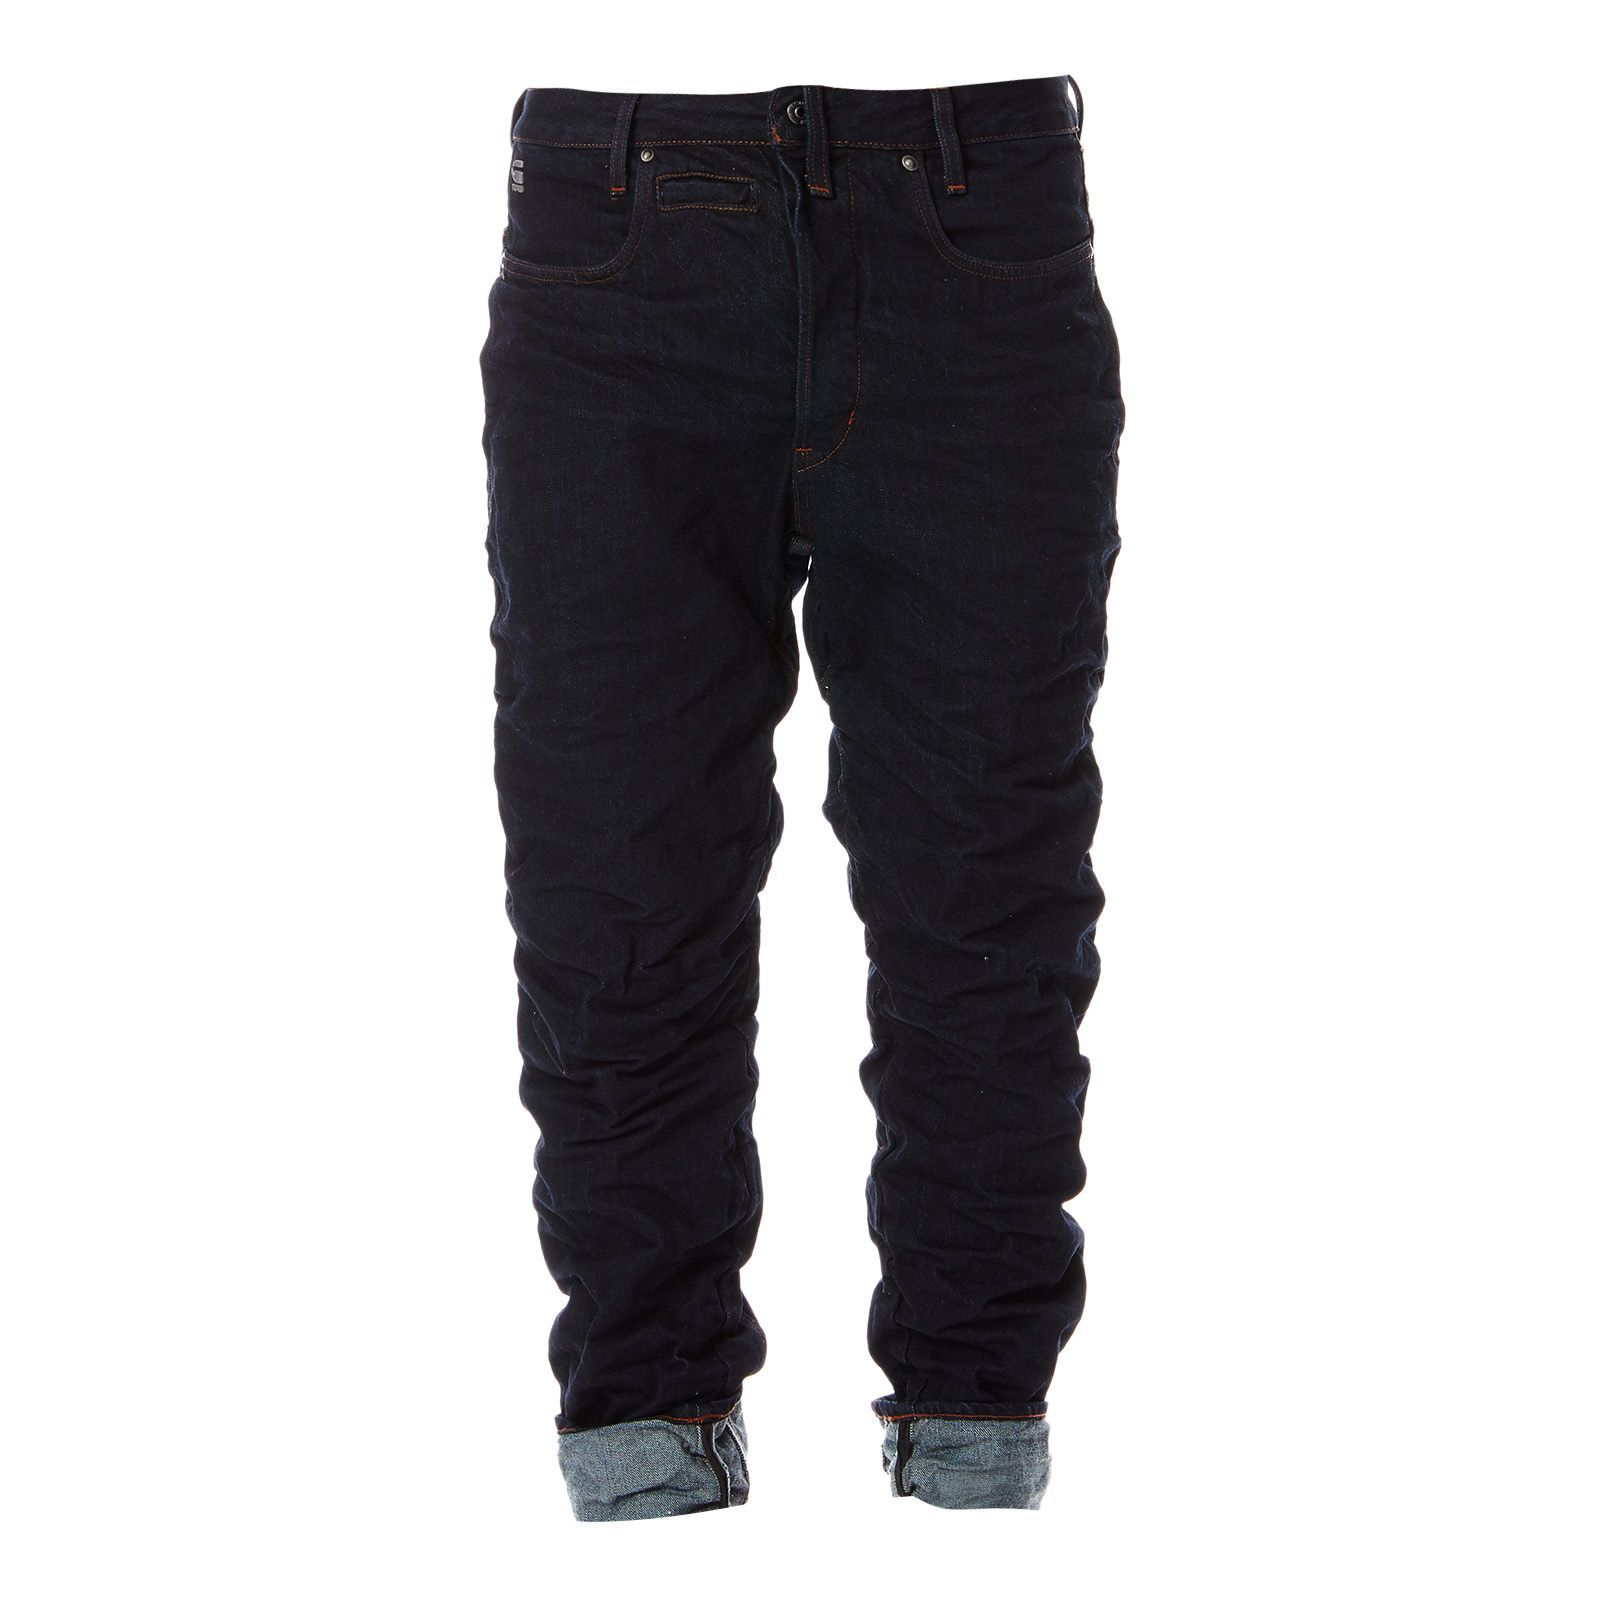 g star loose tapered jeans, G star raw varos sweater men gs